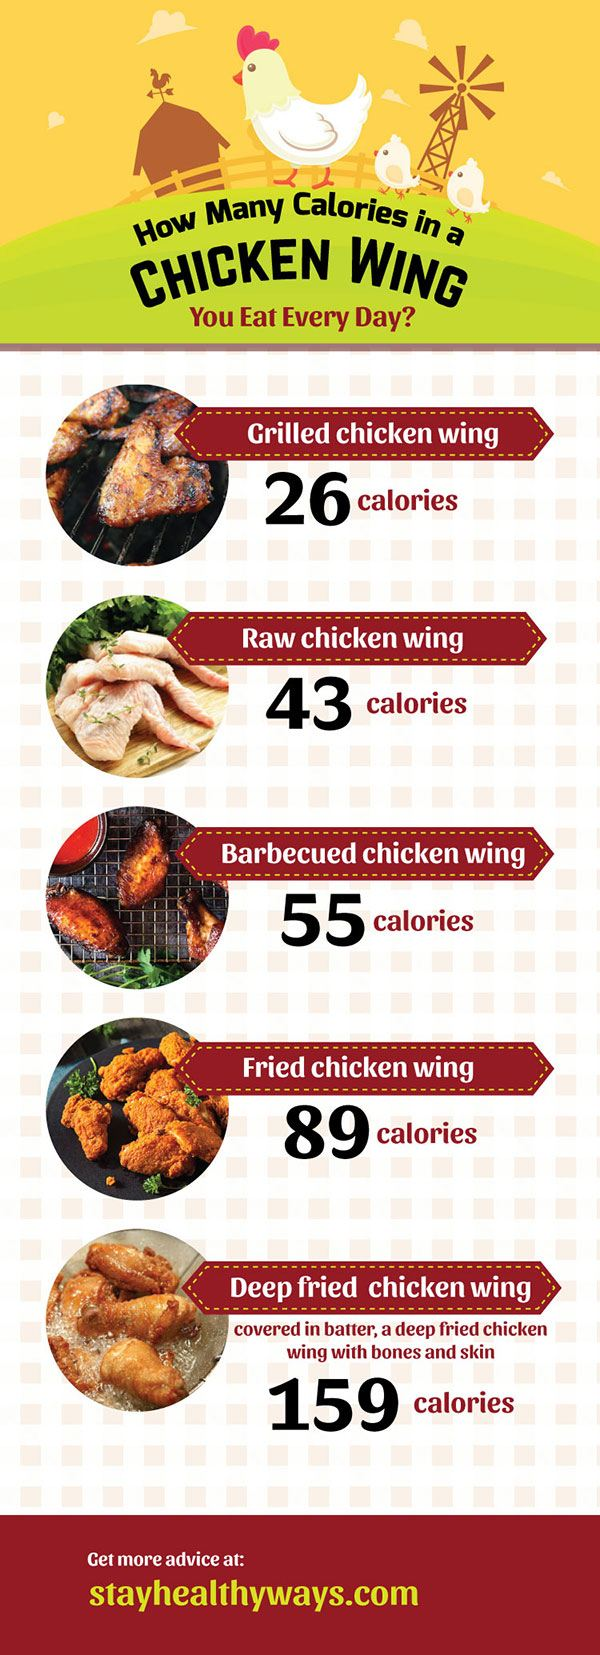 how many calories in a chicken wing infographic